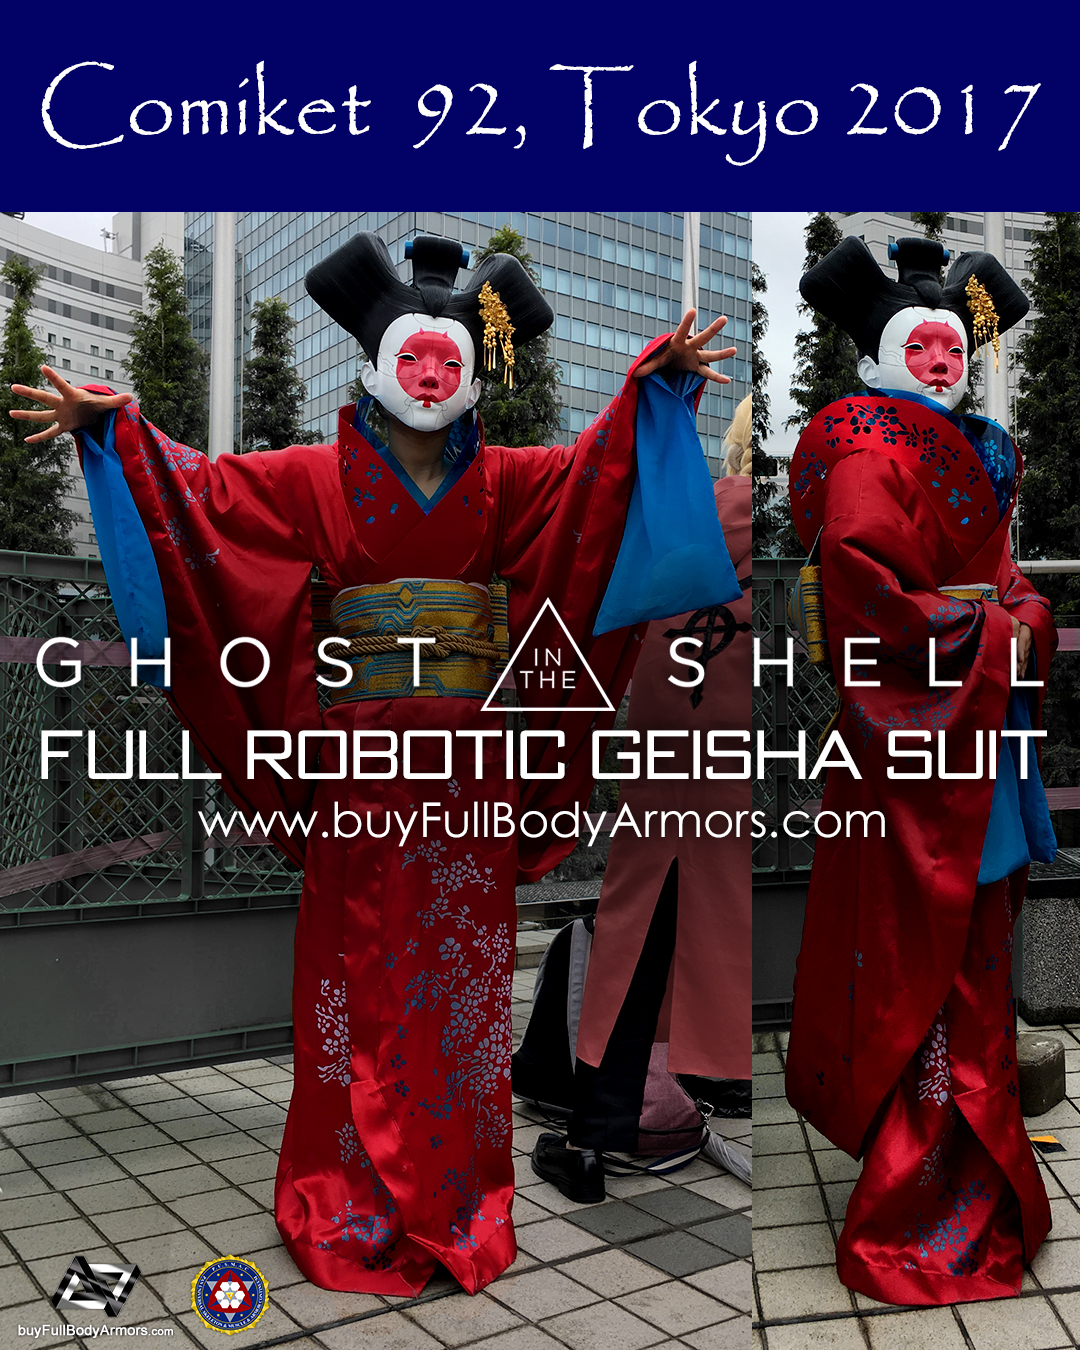 [Comiket 92, Tokyo 2017] The Wearable Robotic Geisha Full Suit from the Movie Ghost in the Shell 2017 1